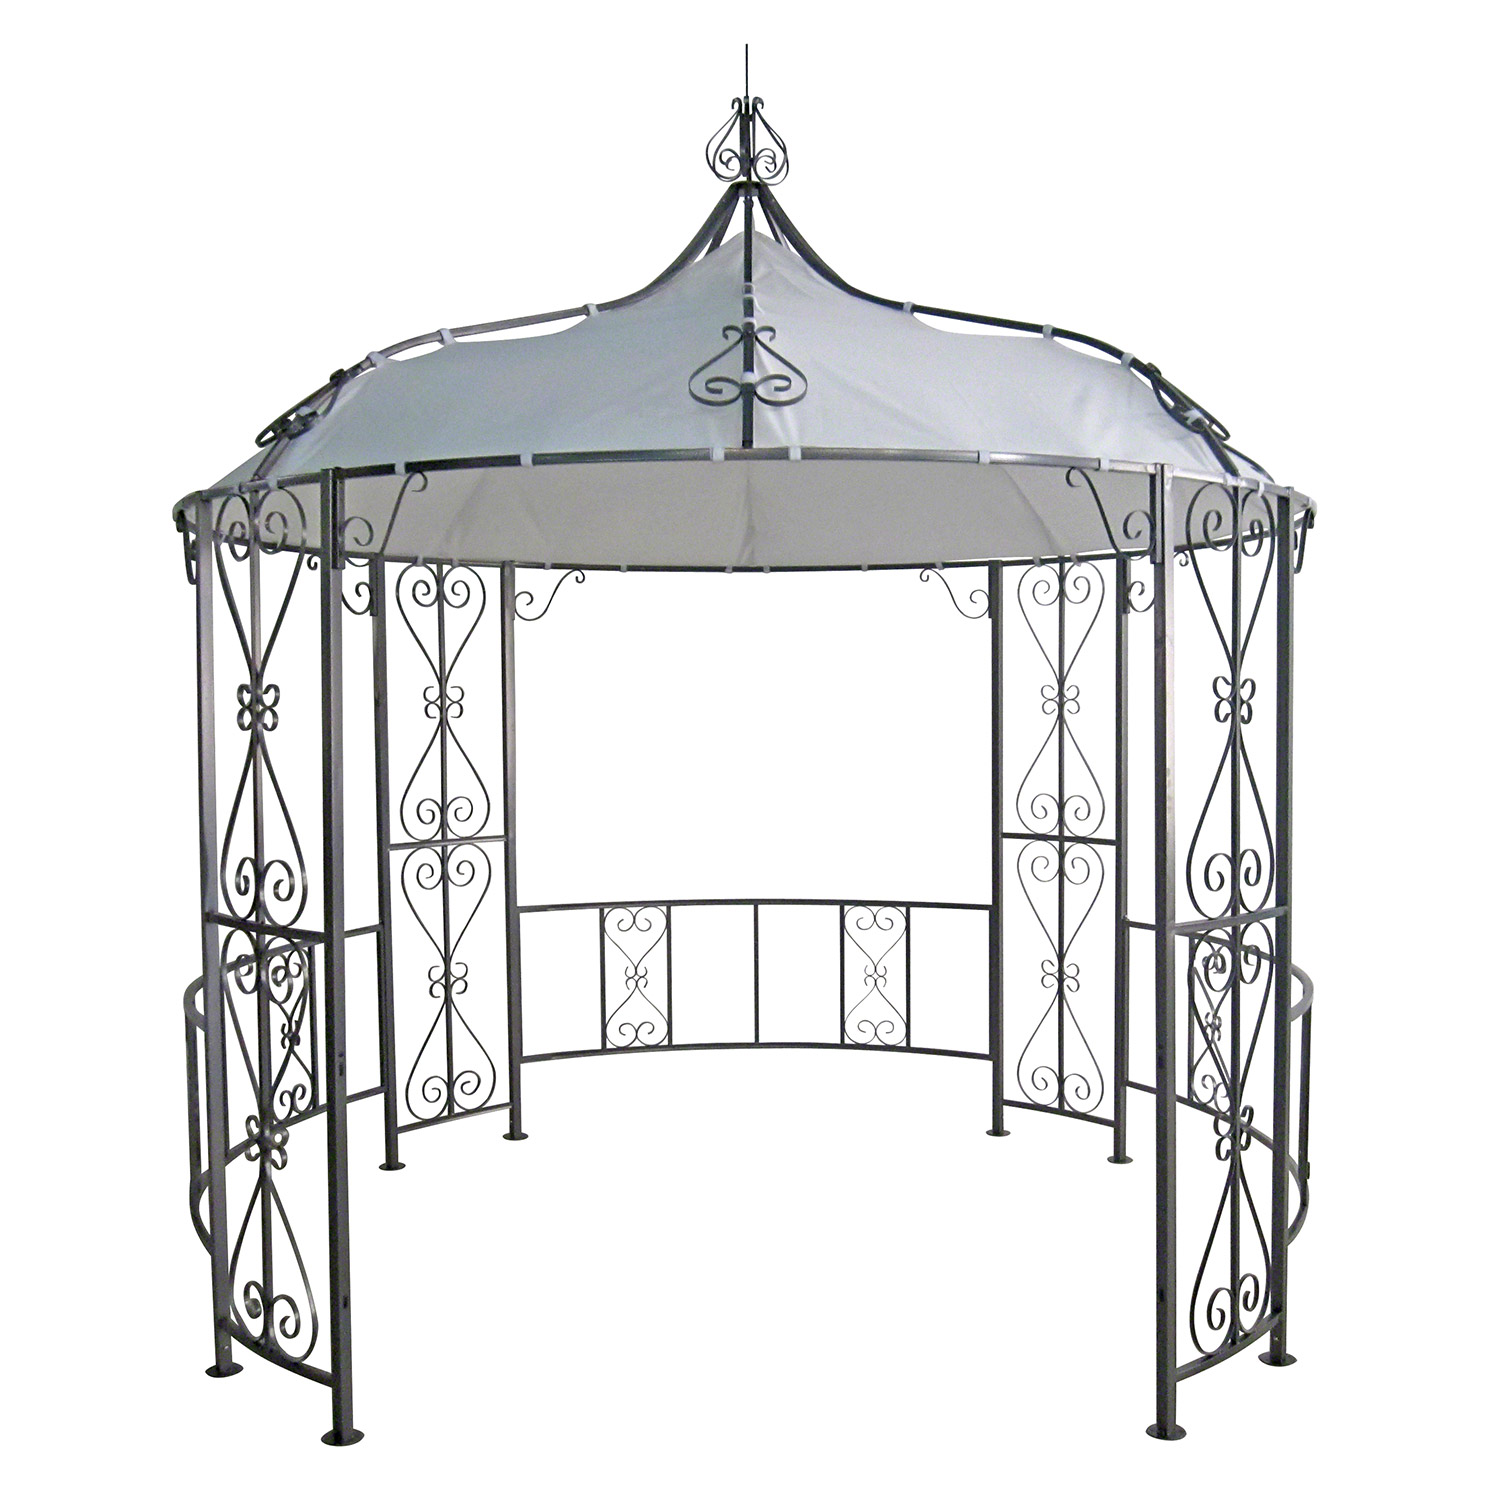 gazebo 3x3x2 9m garten pavillon pavillion zelt metall partyzelt gartenpavillion ebay. Black Bedroom Furniture Sets. Home Design Ideas